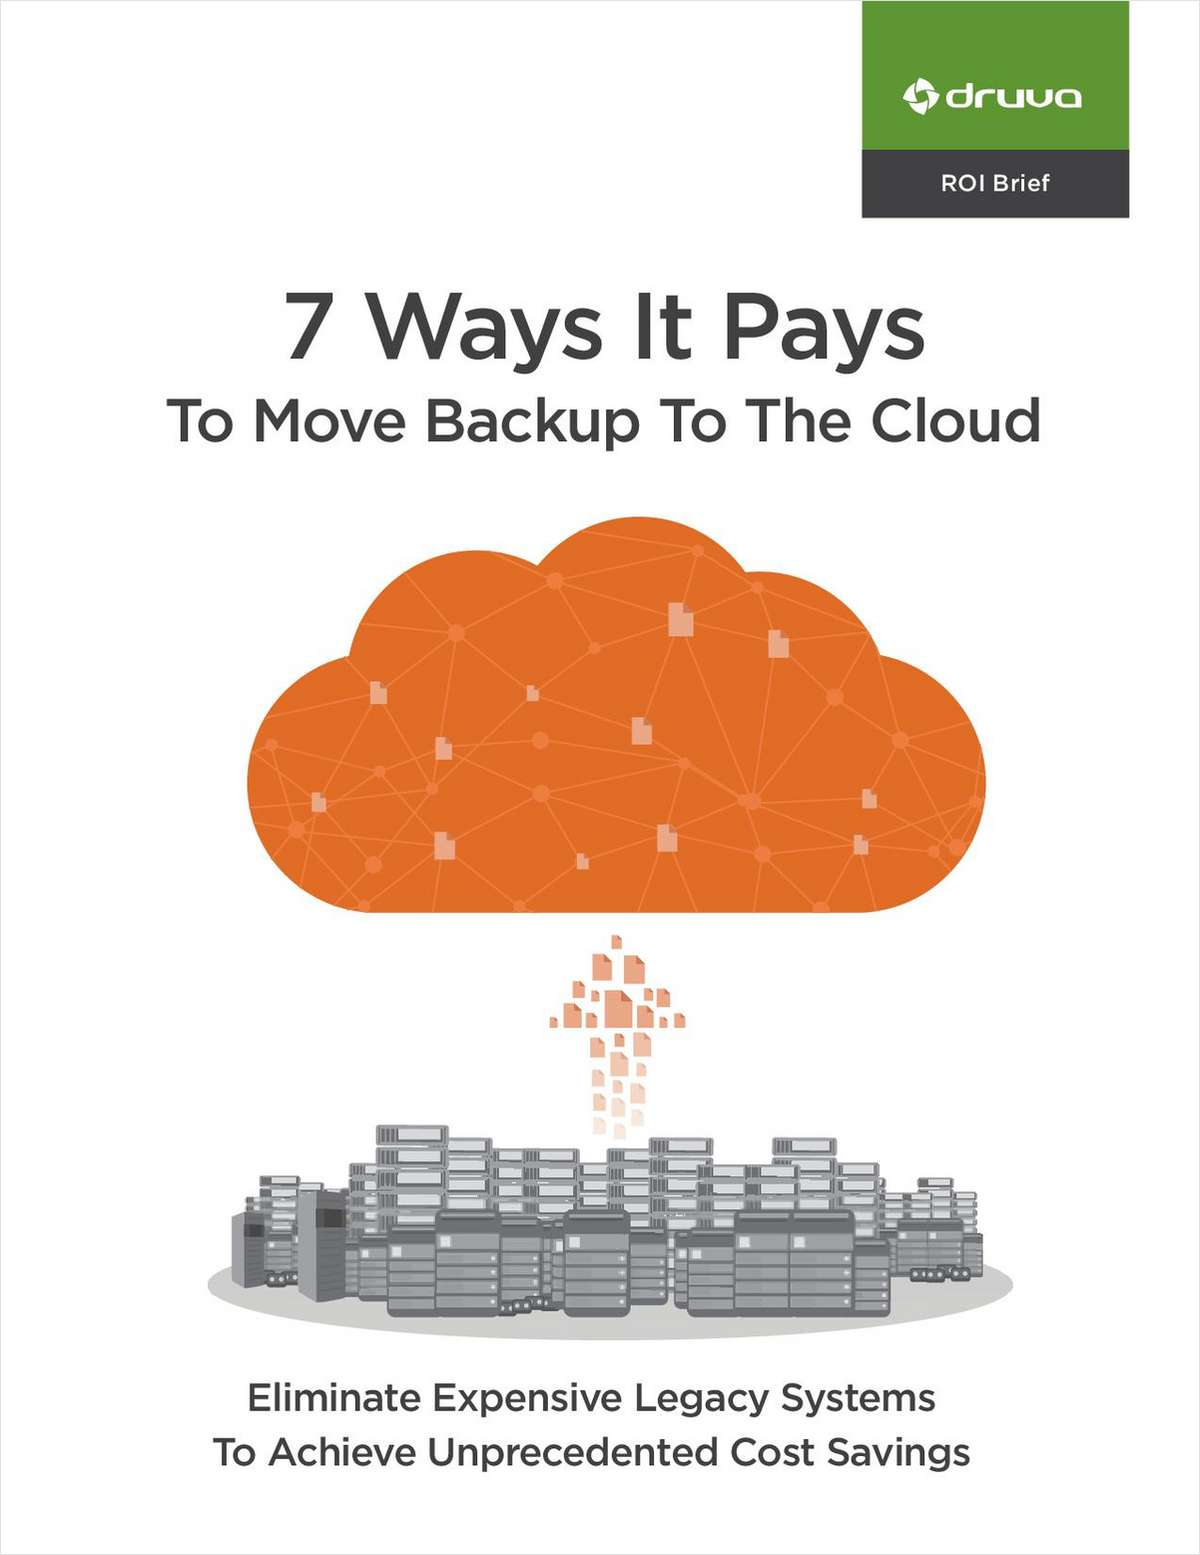 7 Ways It Pays To Move Backup To The Cloud